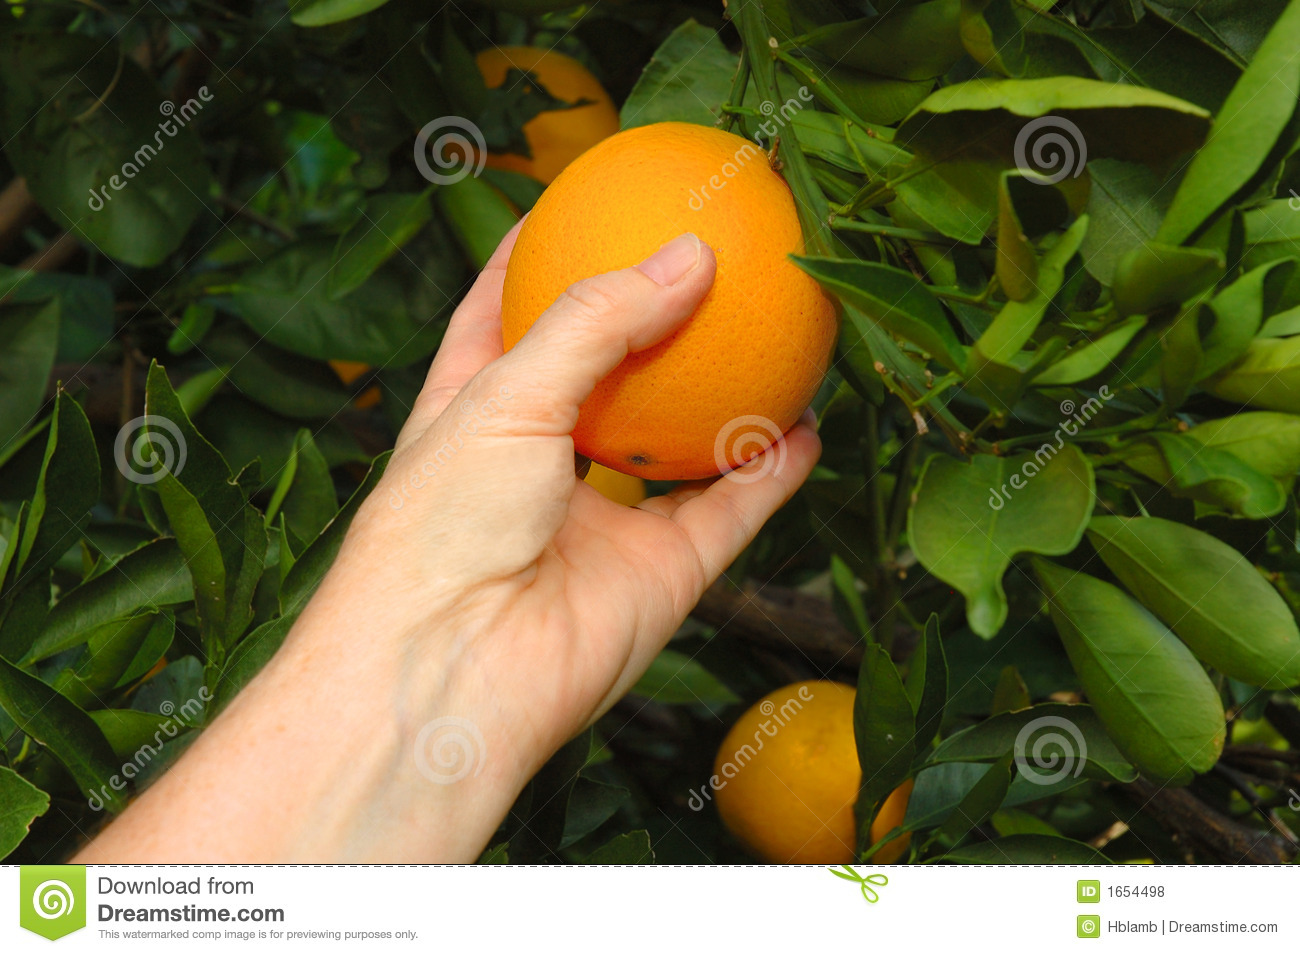 Hand picking a fresh, ripe florida naval orange from its branch.